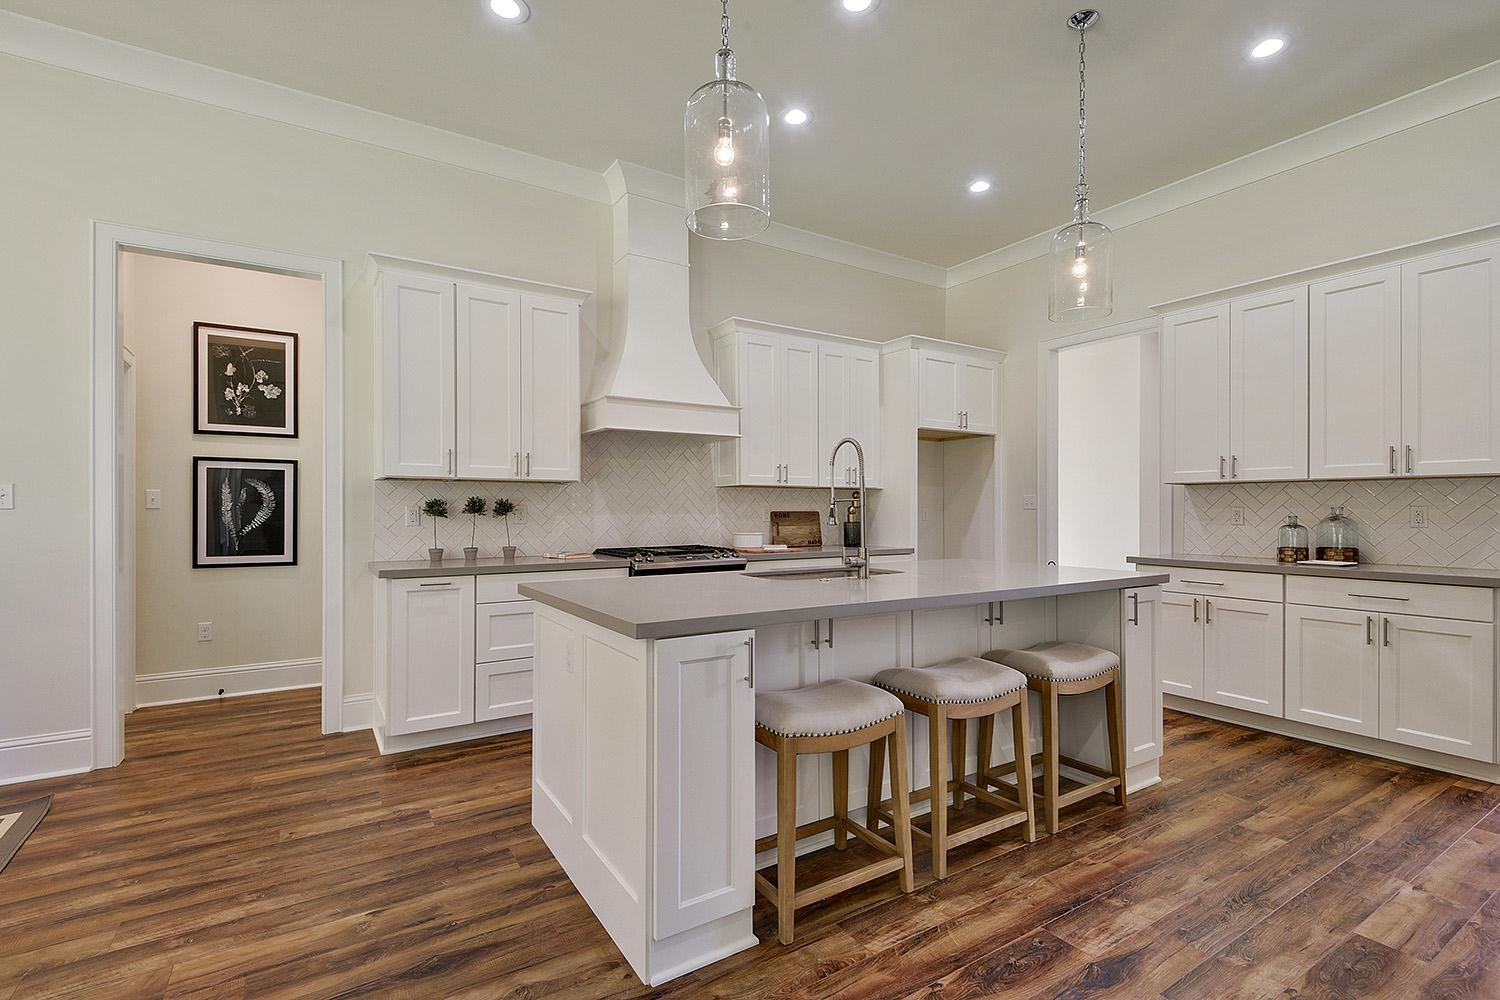 Kitchen featured in the Cottonwood By Highland Homes in New Orleans, LA